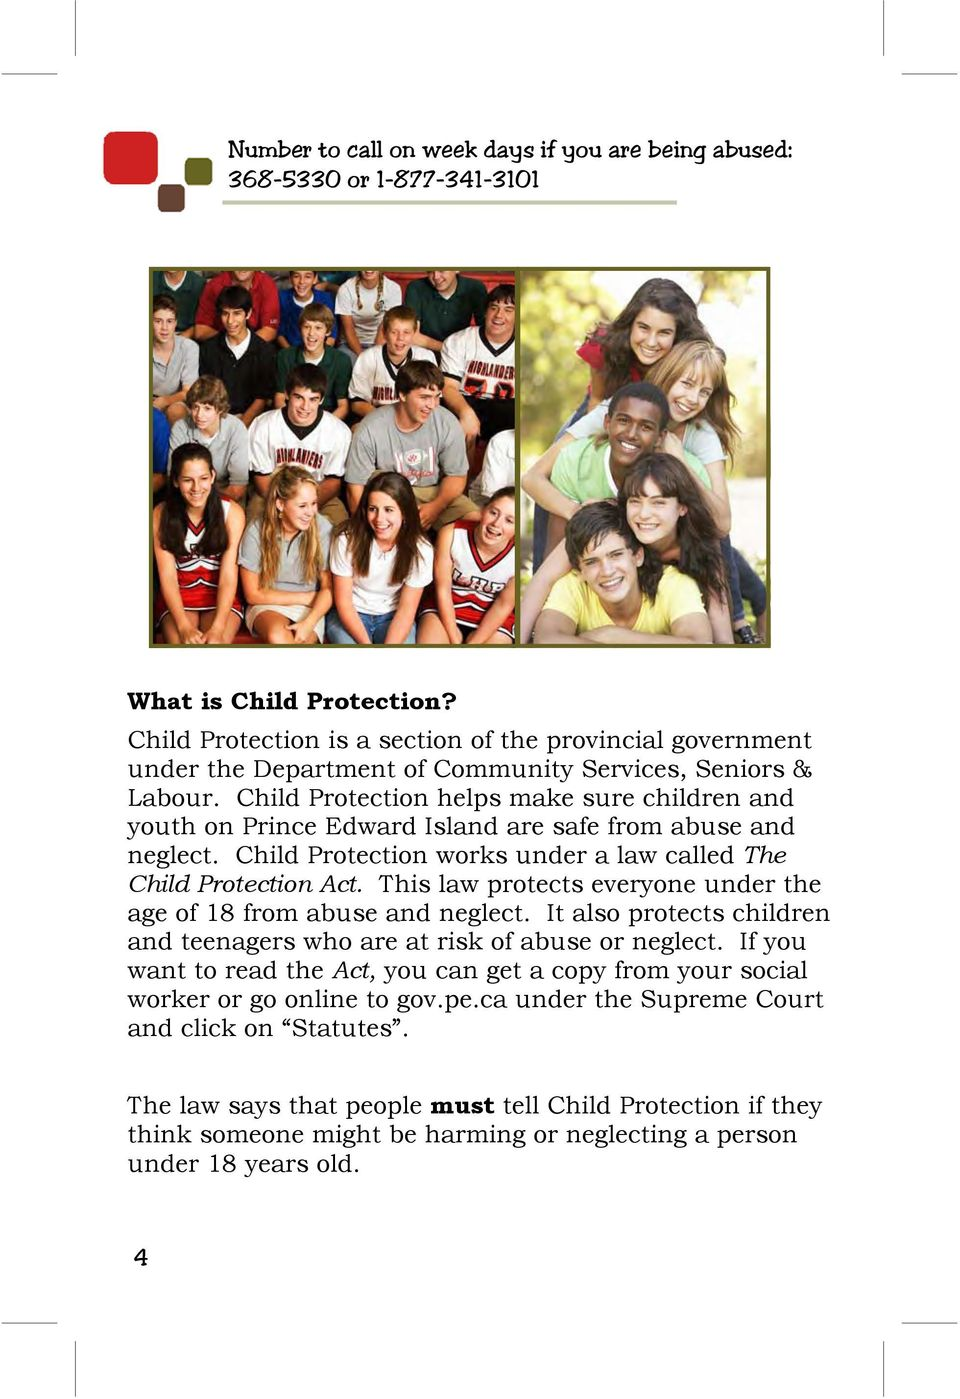 Child Protection helps make sure children and youth on Prince Edward Island are safe from abuse and neglect. Child Protection works under a law called The Child Protection Act.